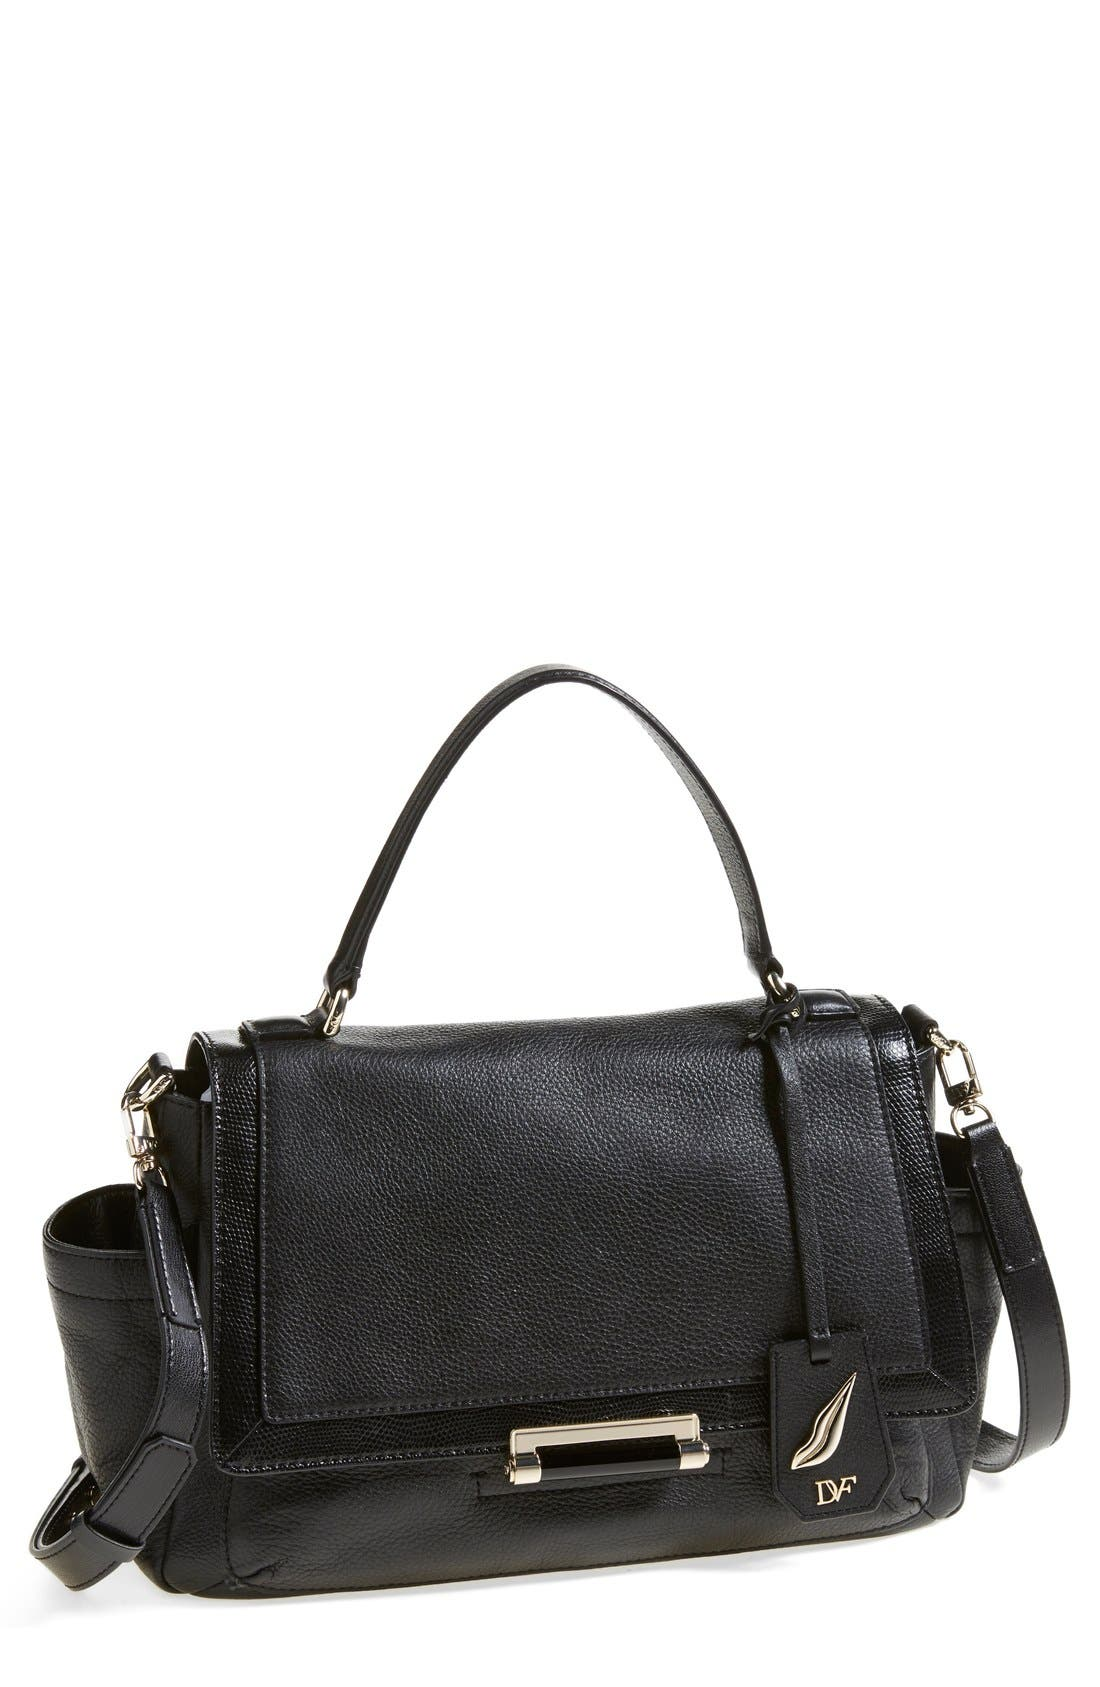 Main Image - Diane von Furstenberg '440 Courier' Leather Satchel